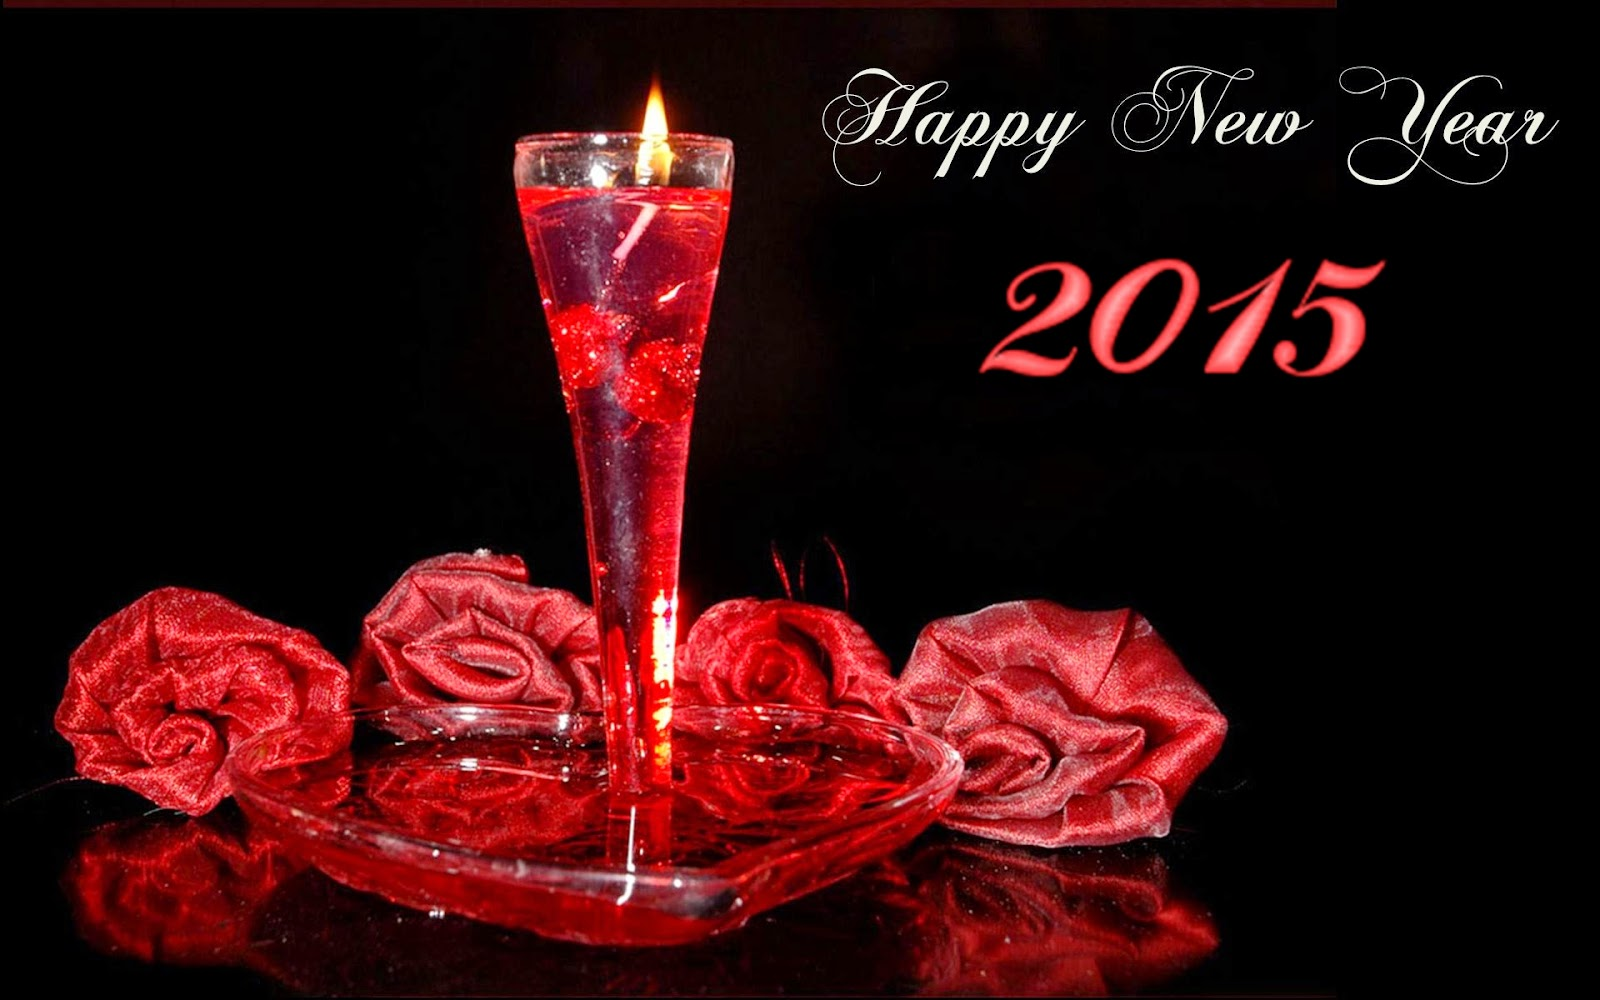 Happy New Year 2015 Loving Cards - For Latest